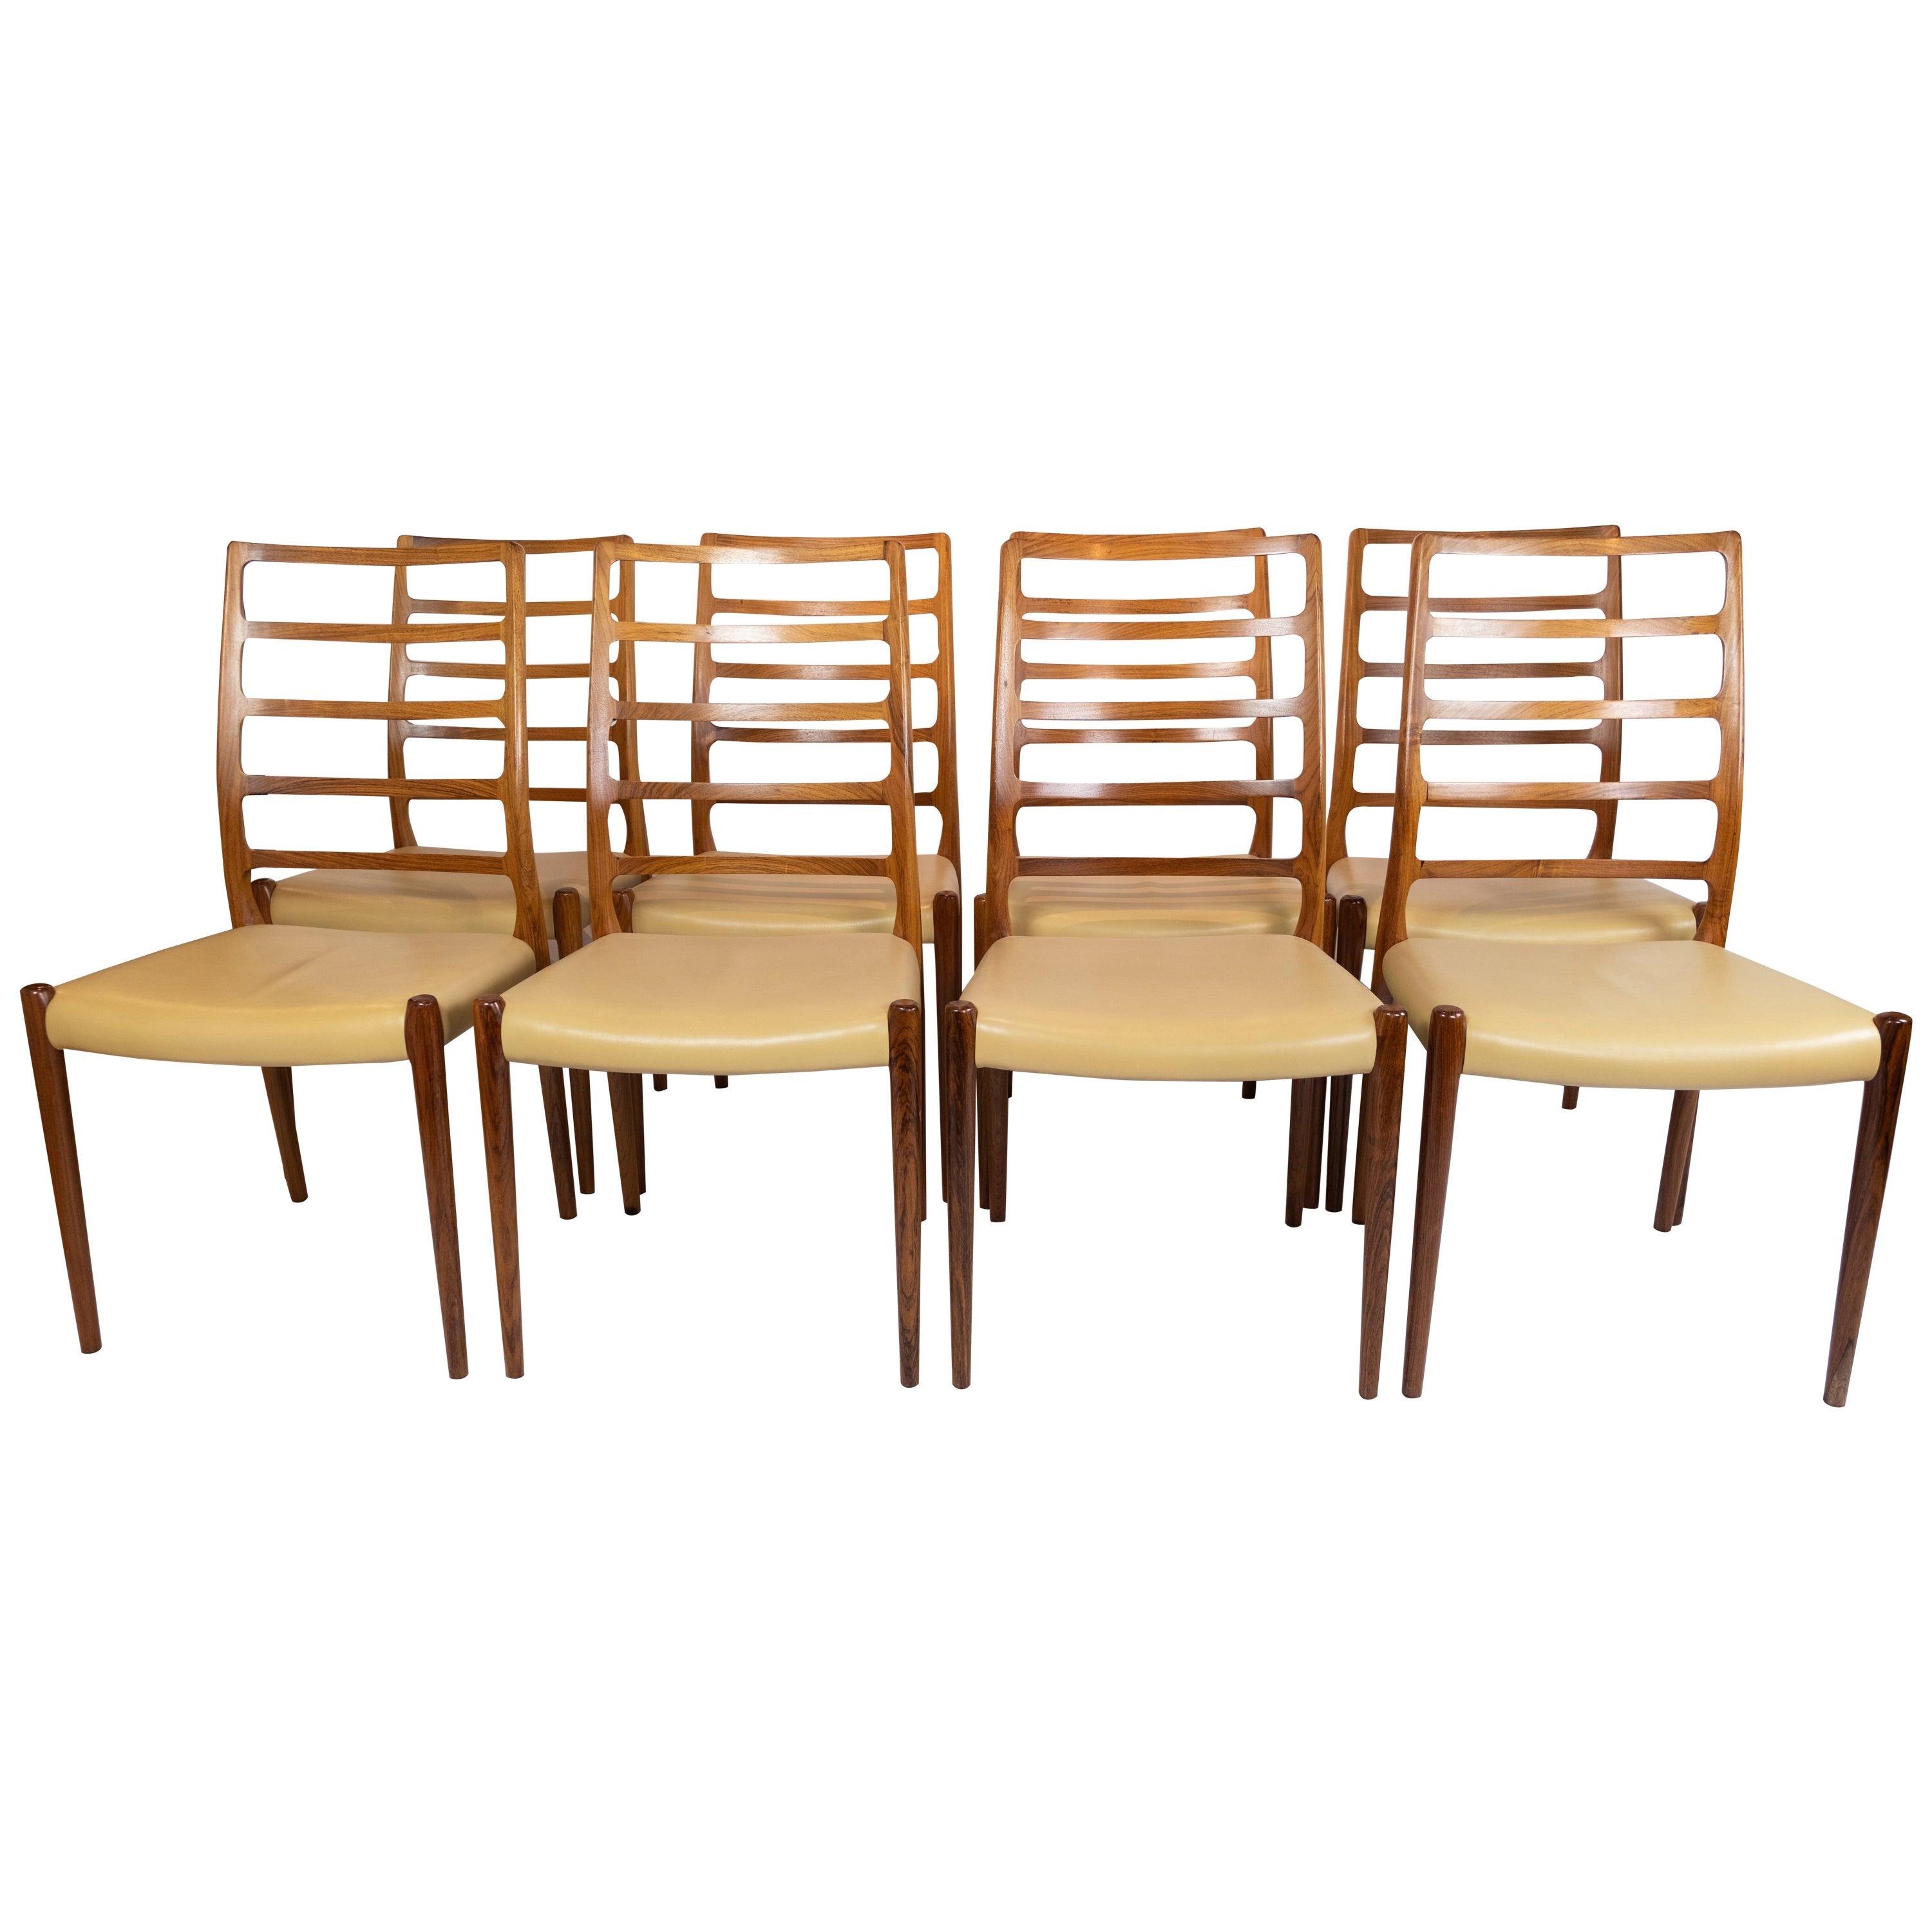 Set of 8 Dining Chairs, Model 82, Designed by N.O. Møller from the 1960s